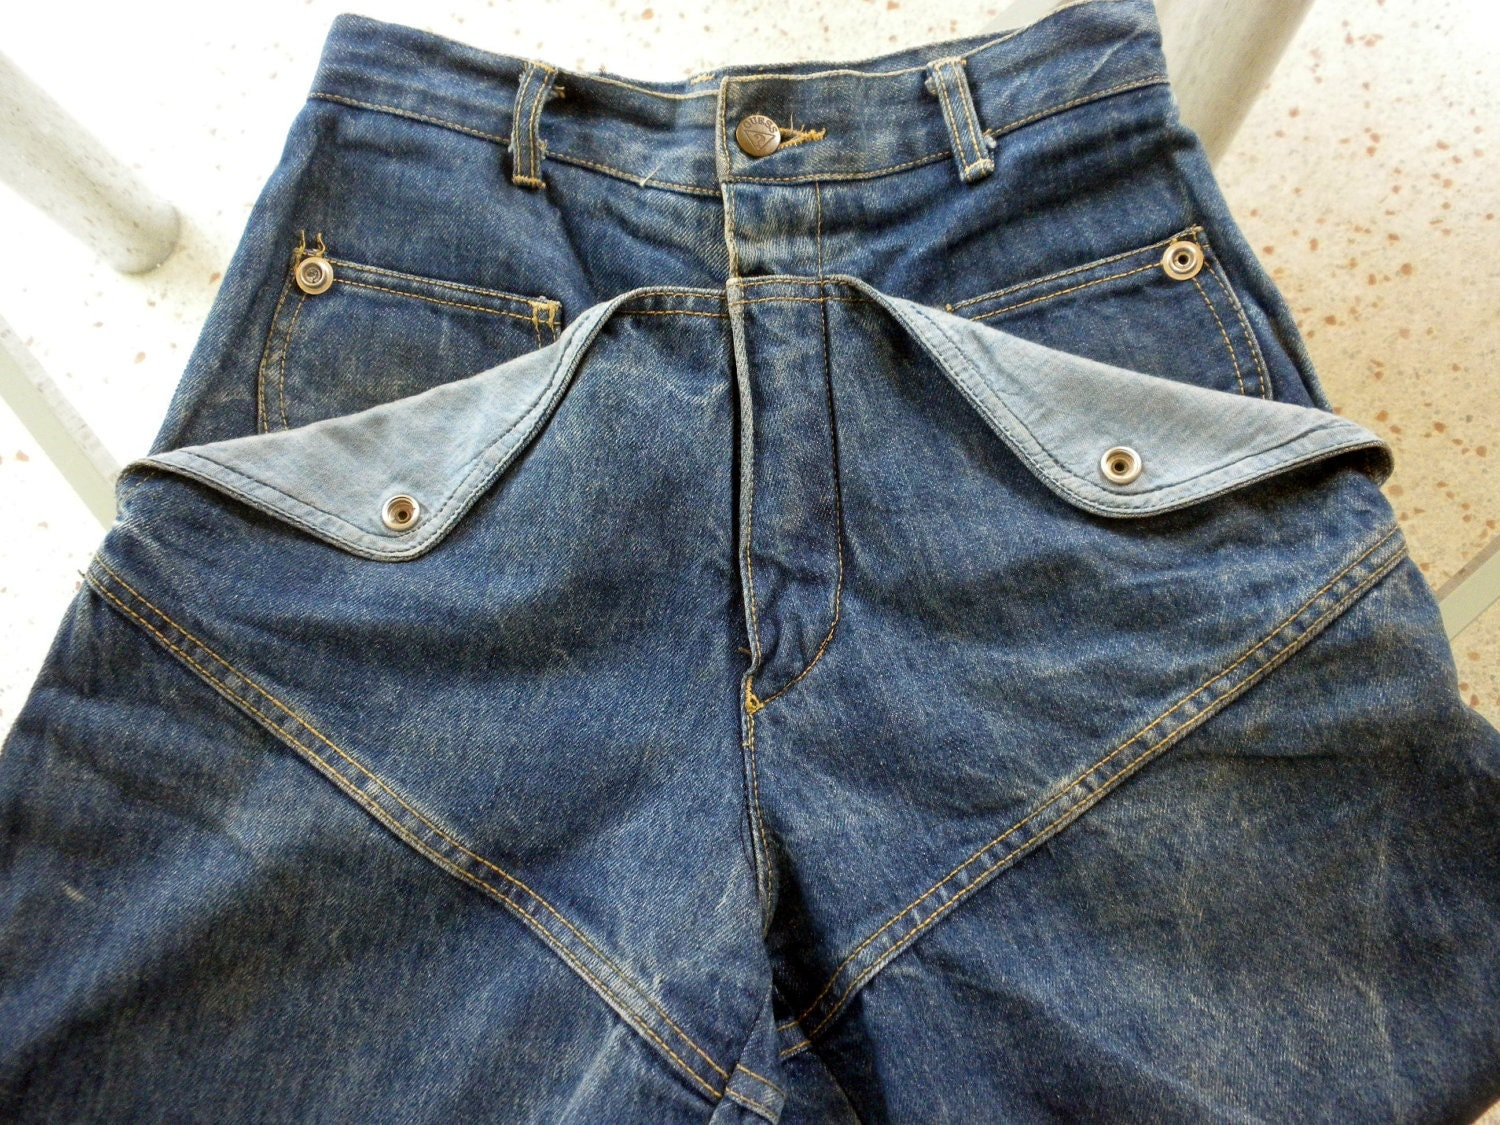 1983 Guess Stone Washed Jeans Engineered Pockets By Luxurylife